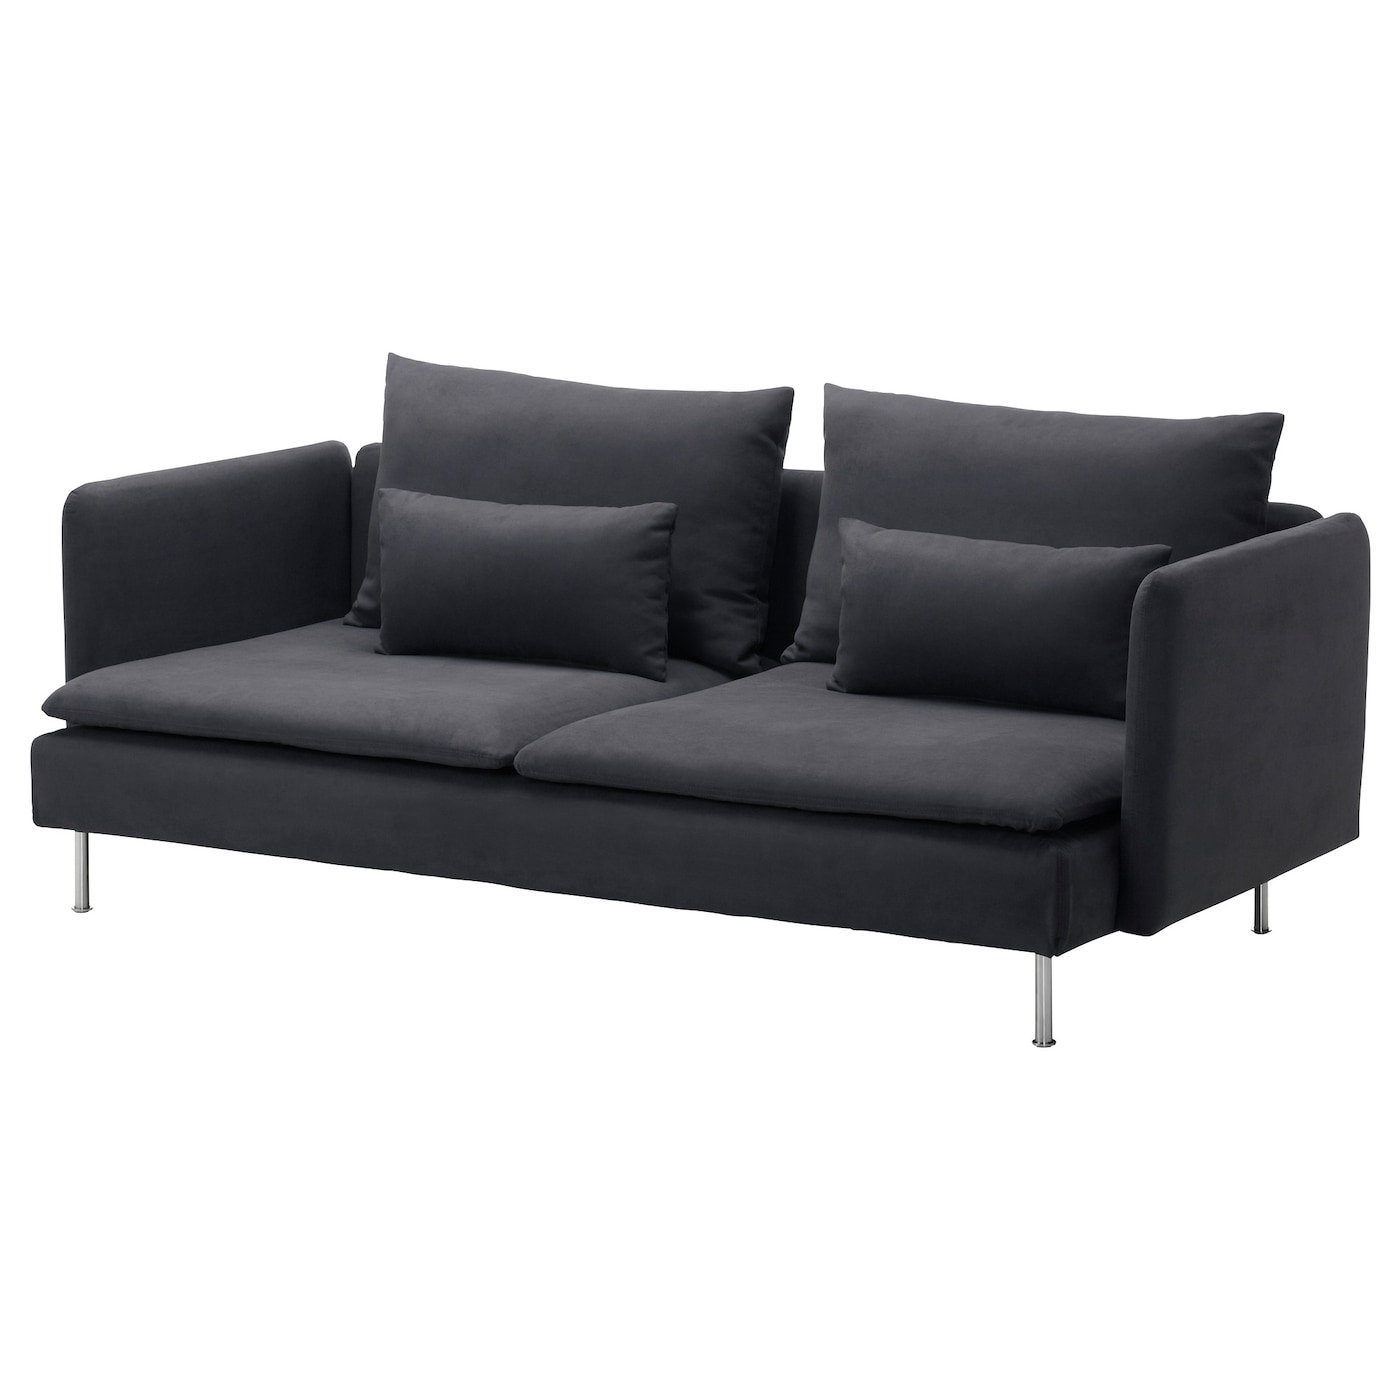 s derhamn three seat sofa samsta dark grey ikea. Black Bedroom Furniture Sets. Home Design Ideas